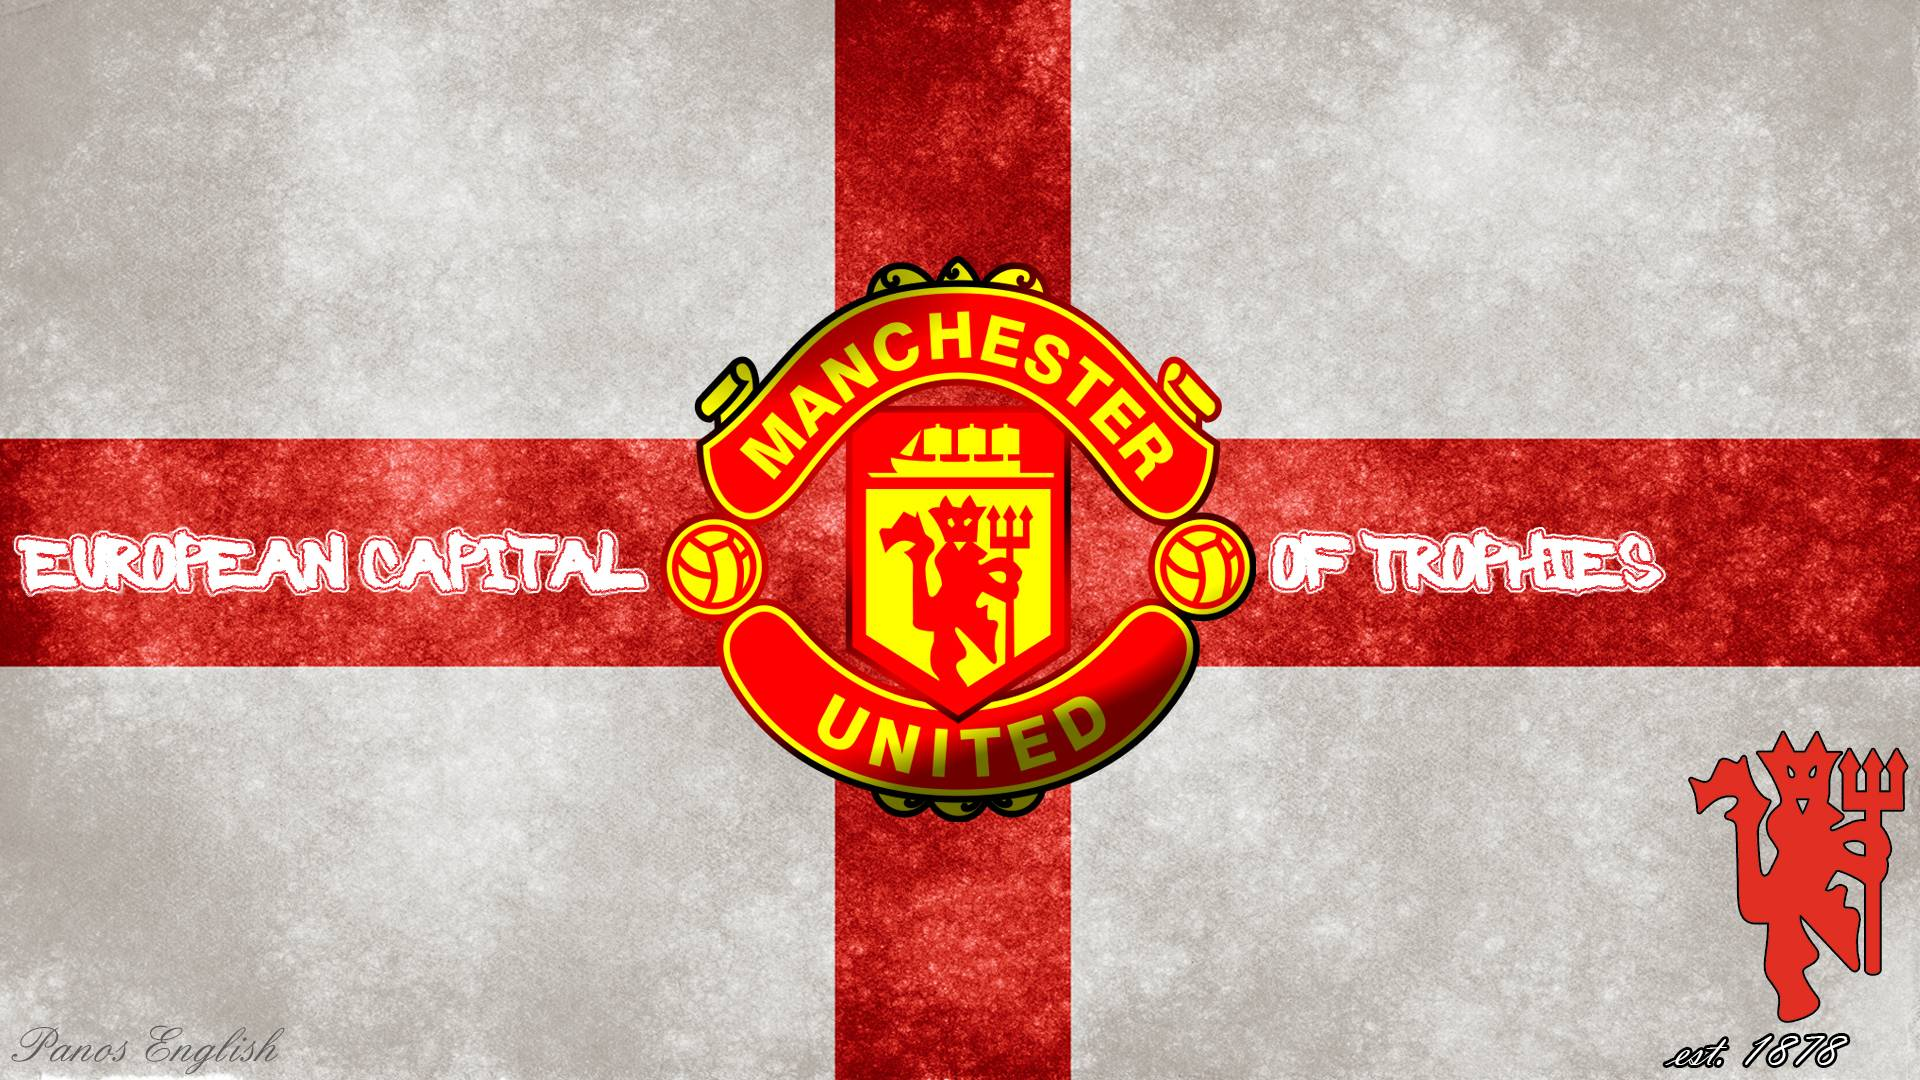 manchester united wallpapers backgrounds 11 hd wallpapers hd images hd pictures manchester united wallpapers